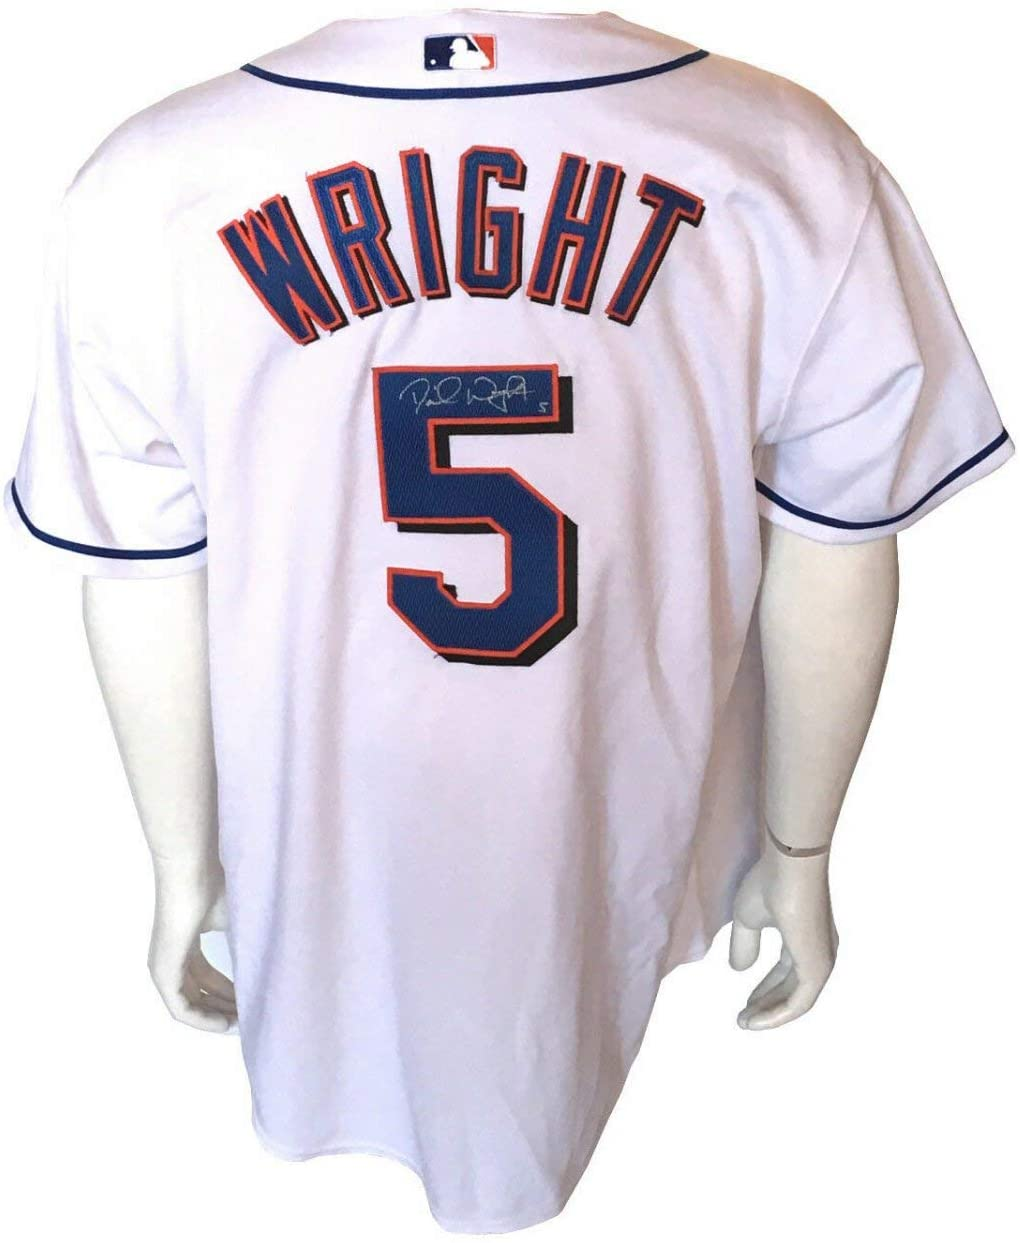 David Wright Autographed Signed Game Used 2005 Ny Mets Home Jersey Autograph JSA Loa